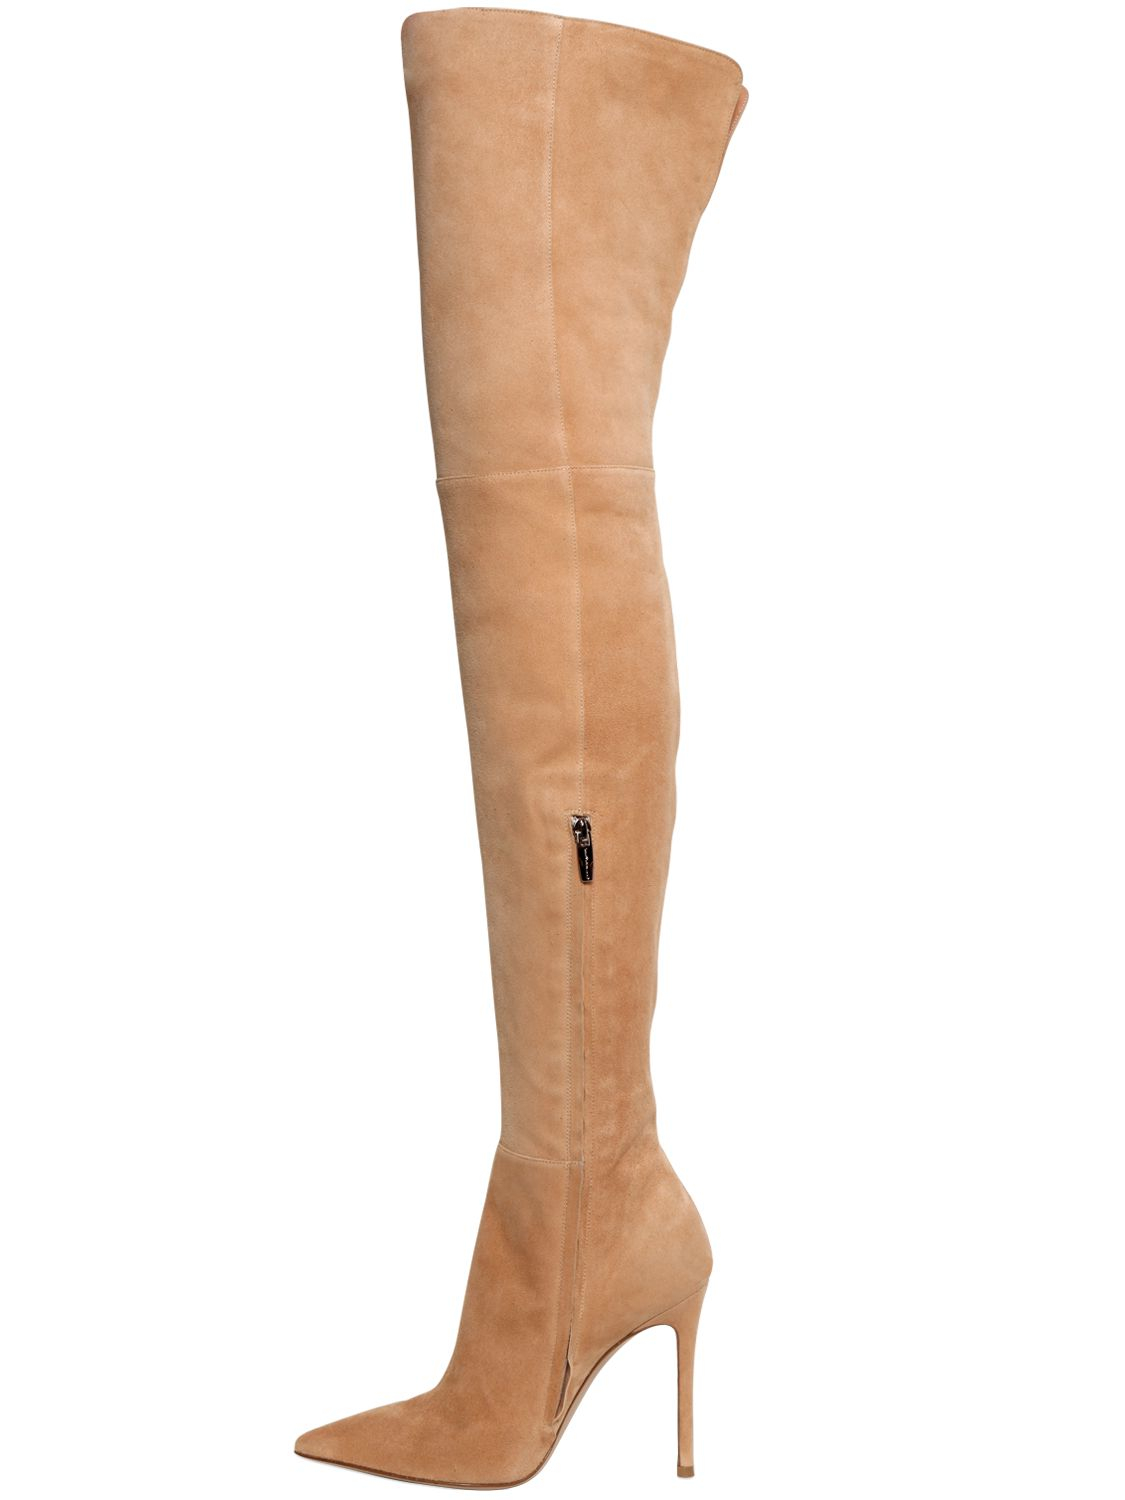 Gianvito rossi 100mm Suede Over The Knee Boots in Natural | Lyst